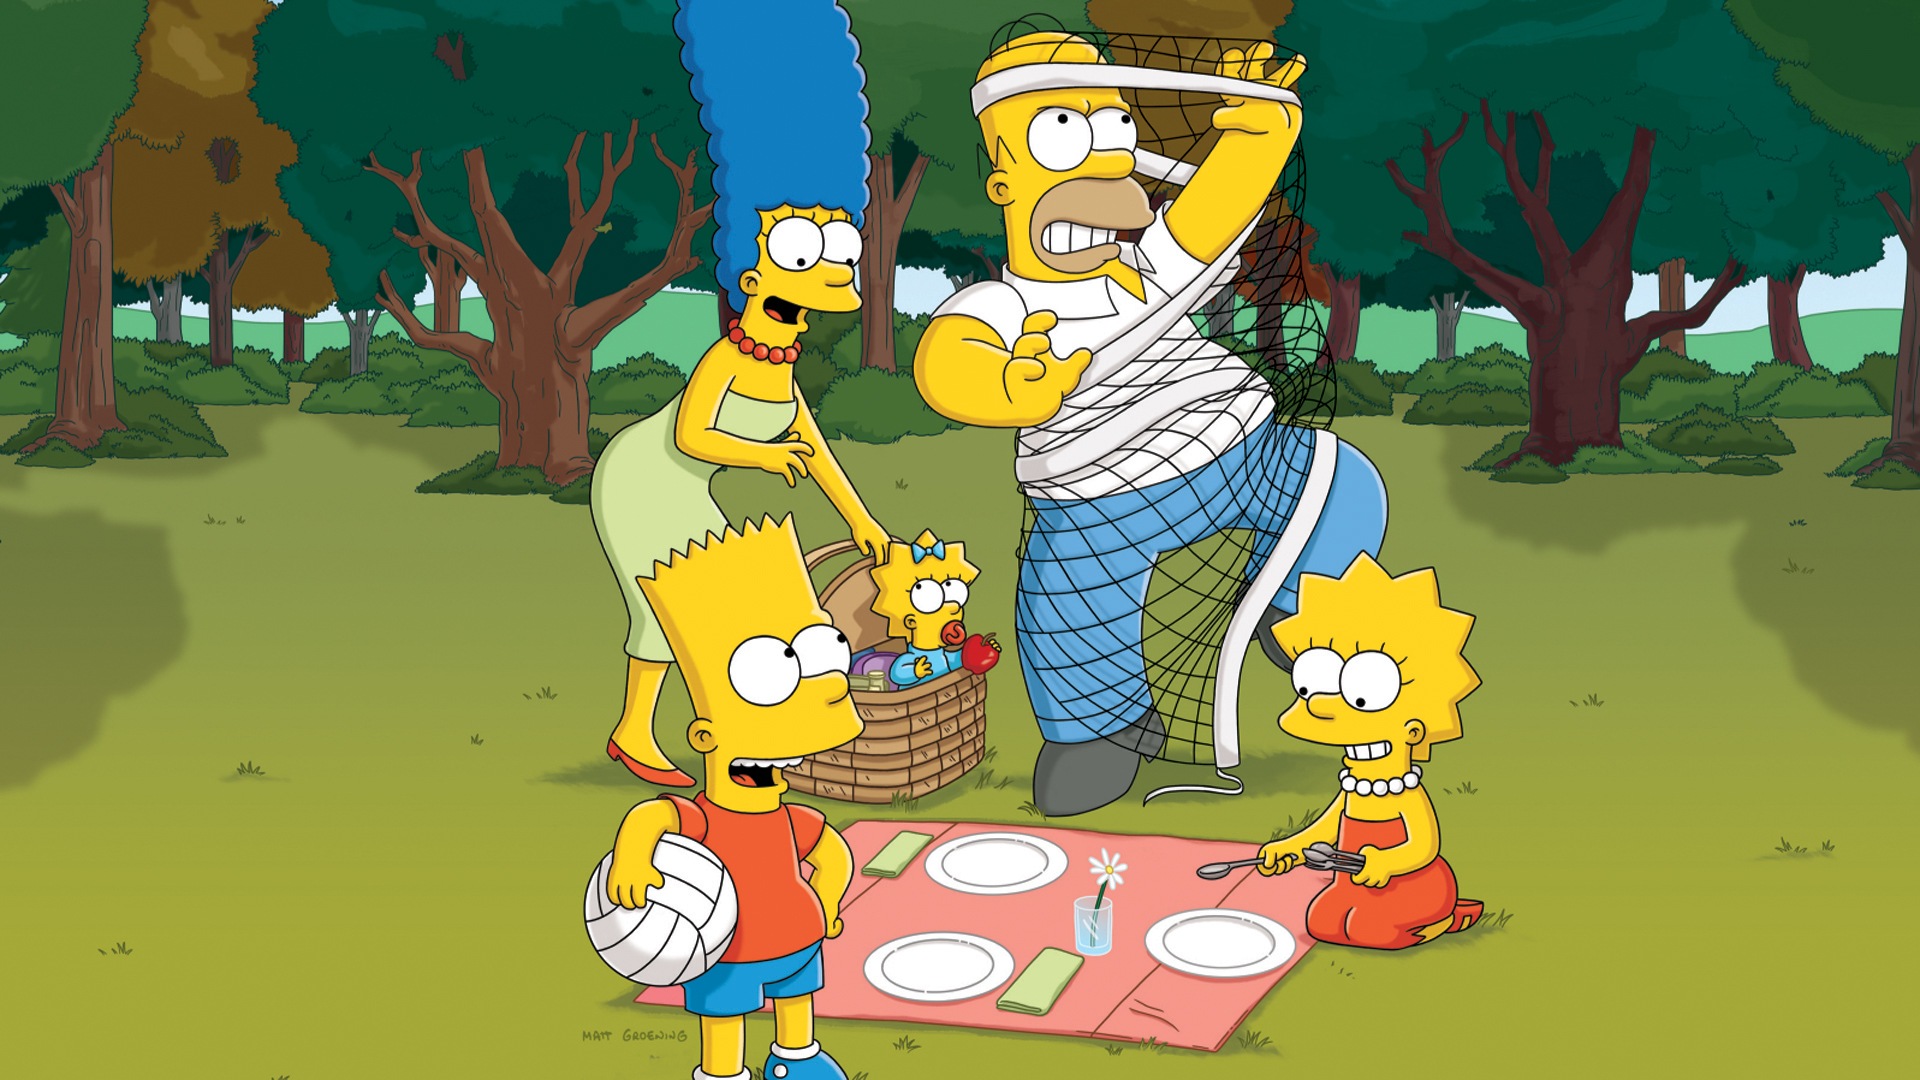 Wallpapers Cars Disney Hd The Simpson Wallpaper Image Picture 9997 Wallpaper